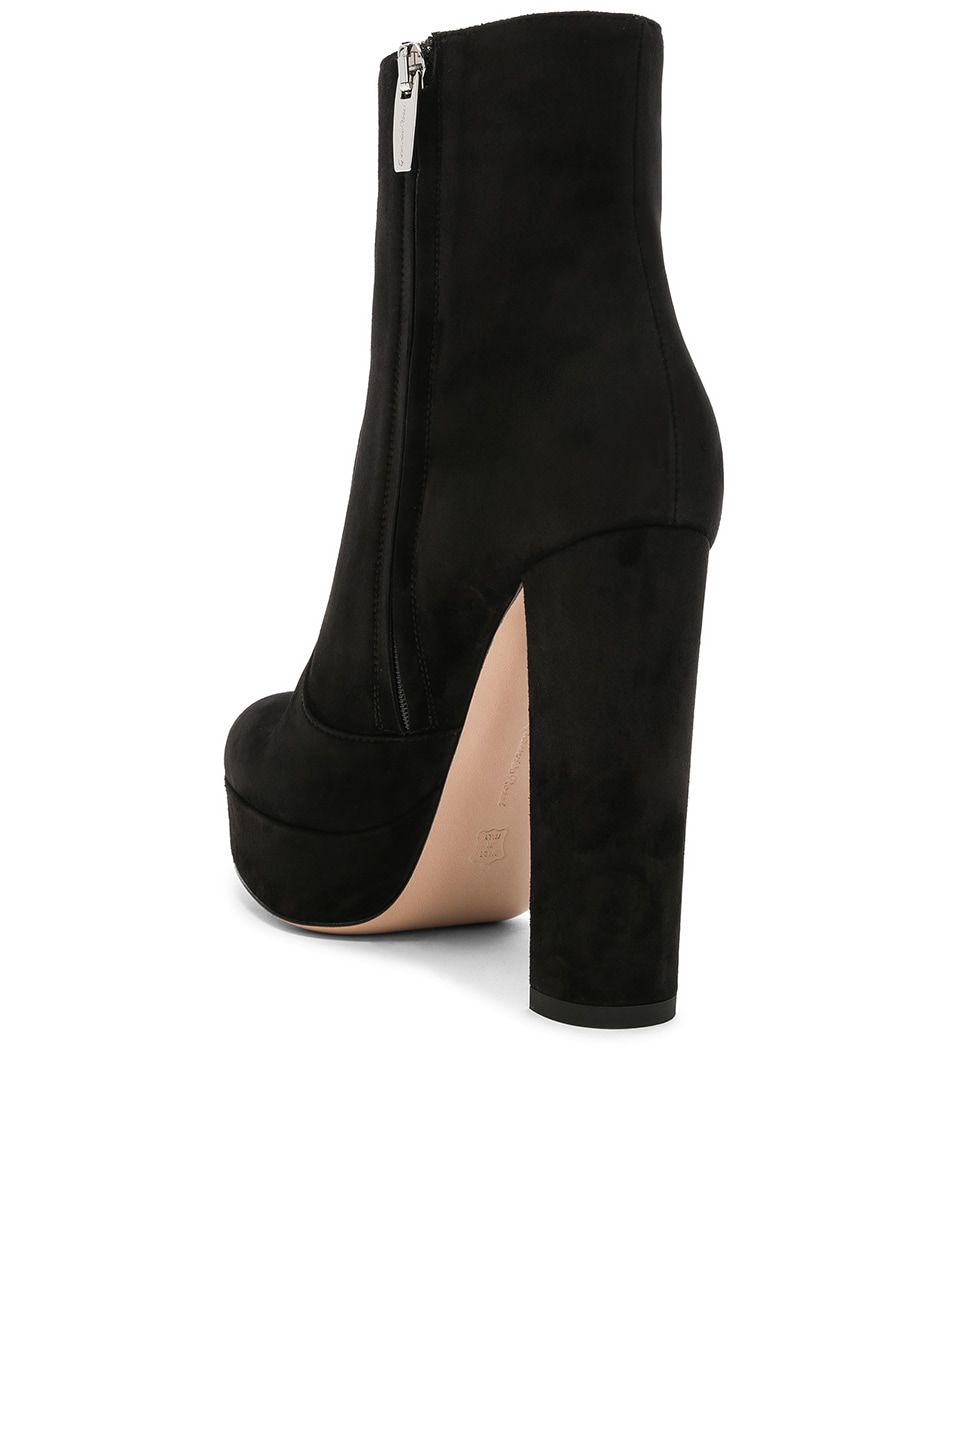 Image 3 of Gianvito Rossi Suede Brook Platform Ankle Boots in Black